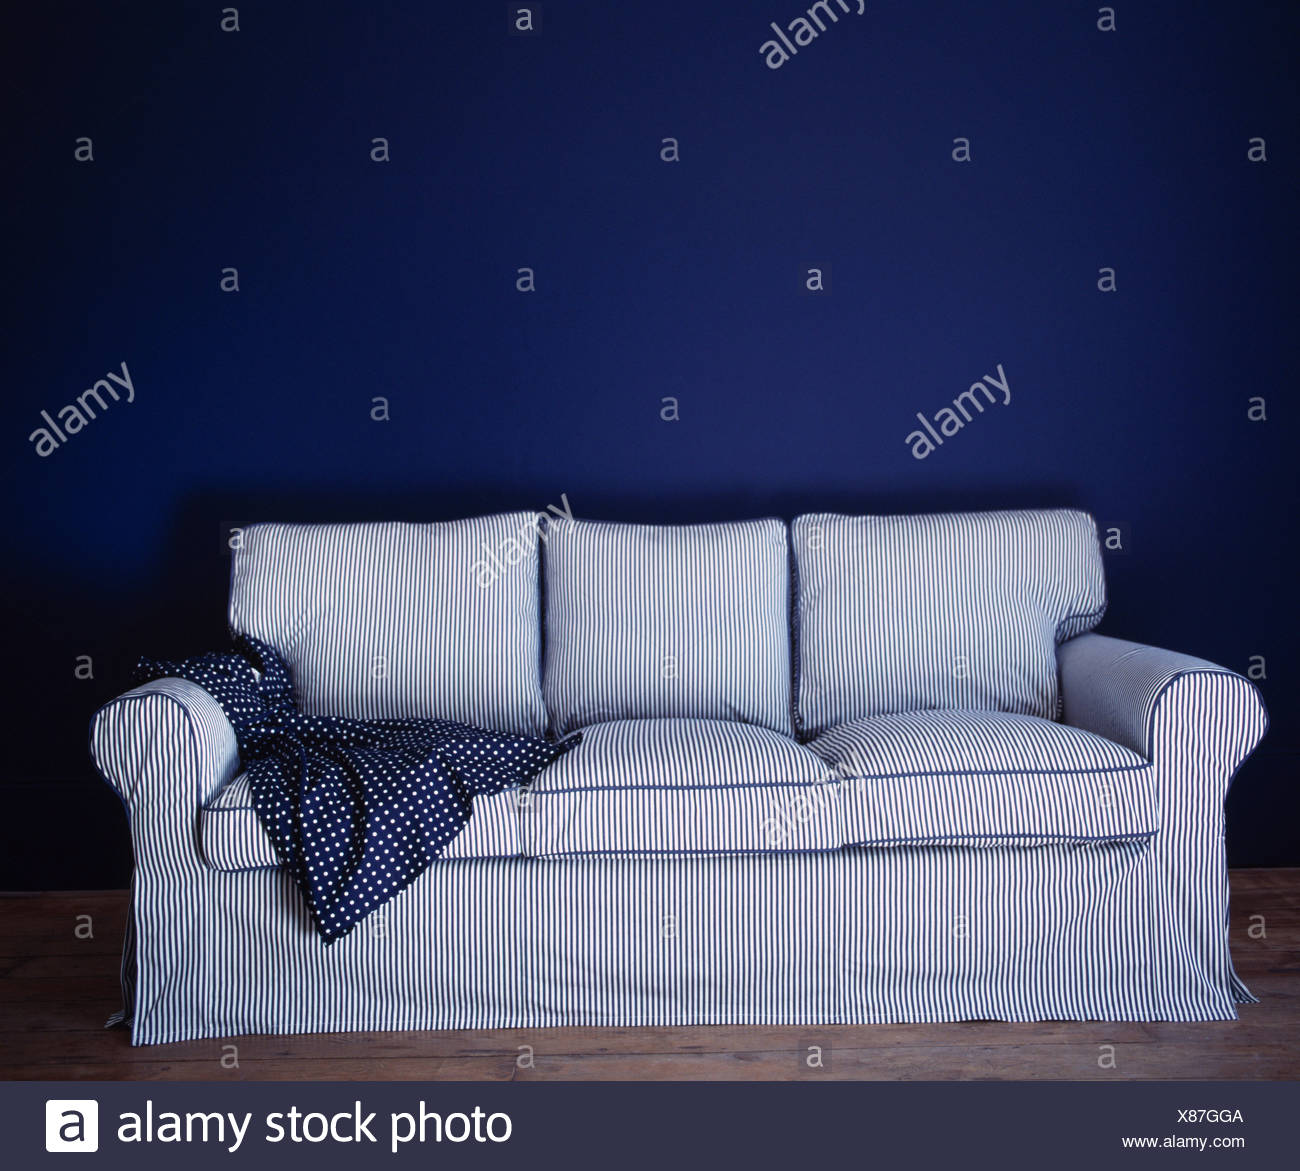 Close-up of traditional sofa with fine-striped loose-cover - Stock Image